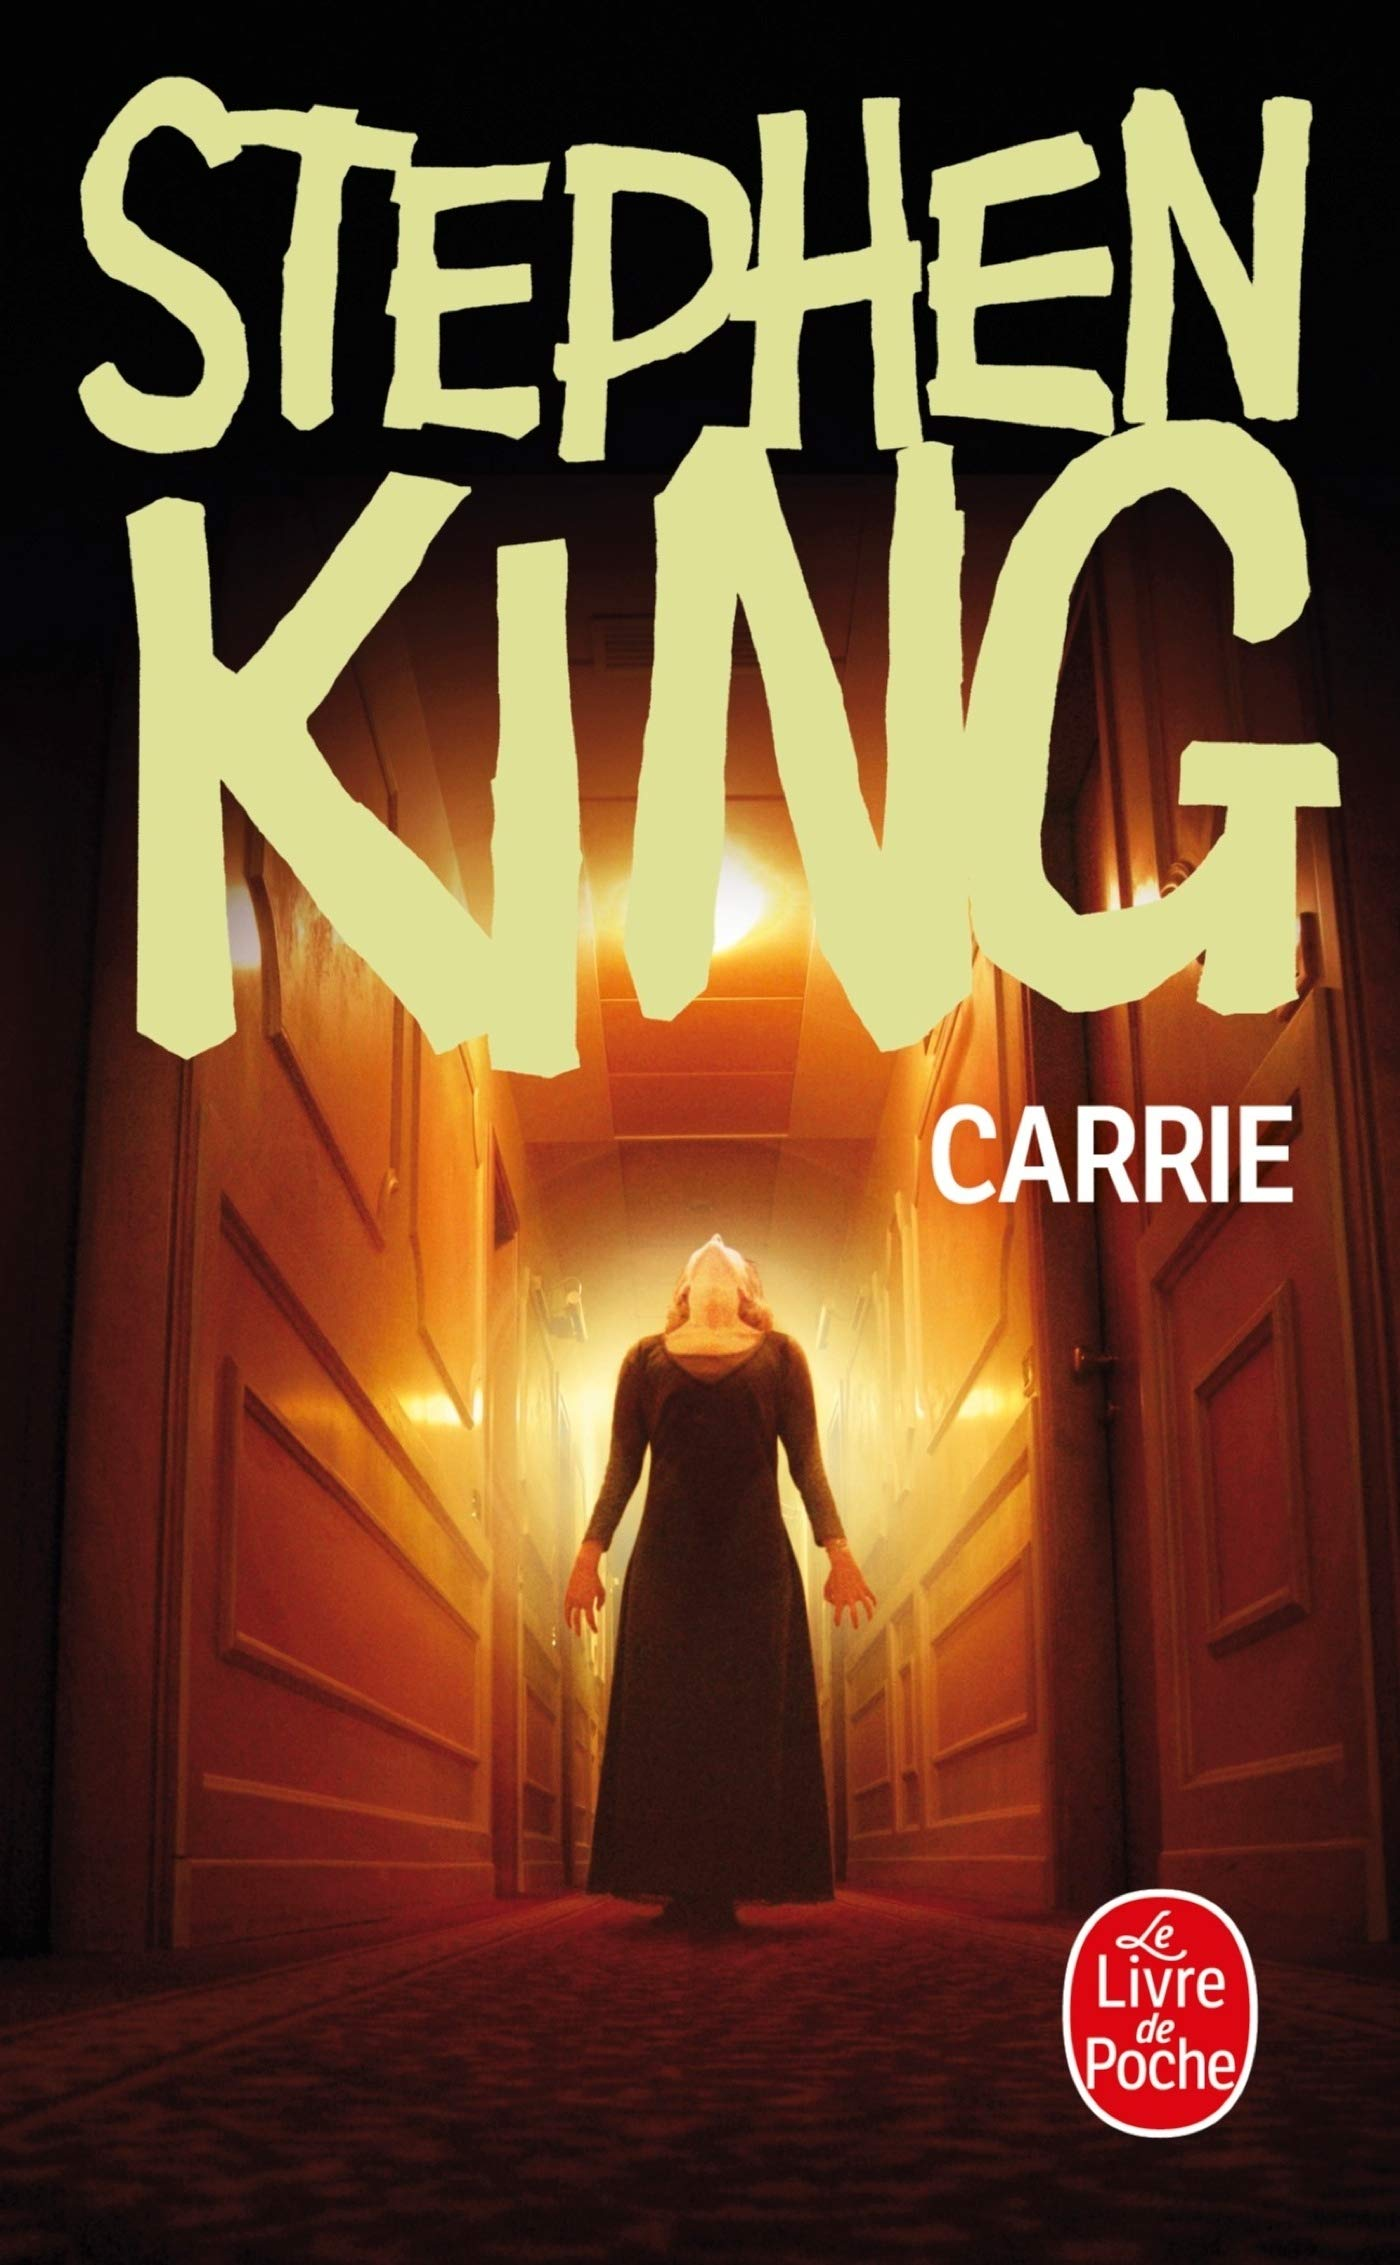 Carrie Livre De Poche Fantastique French Edition